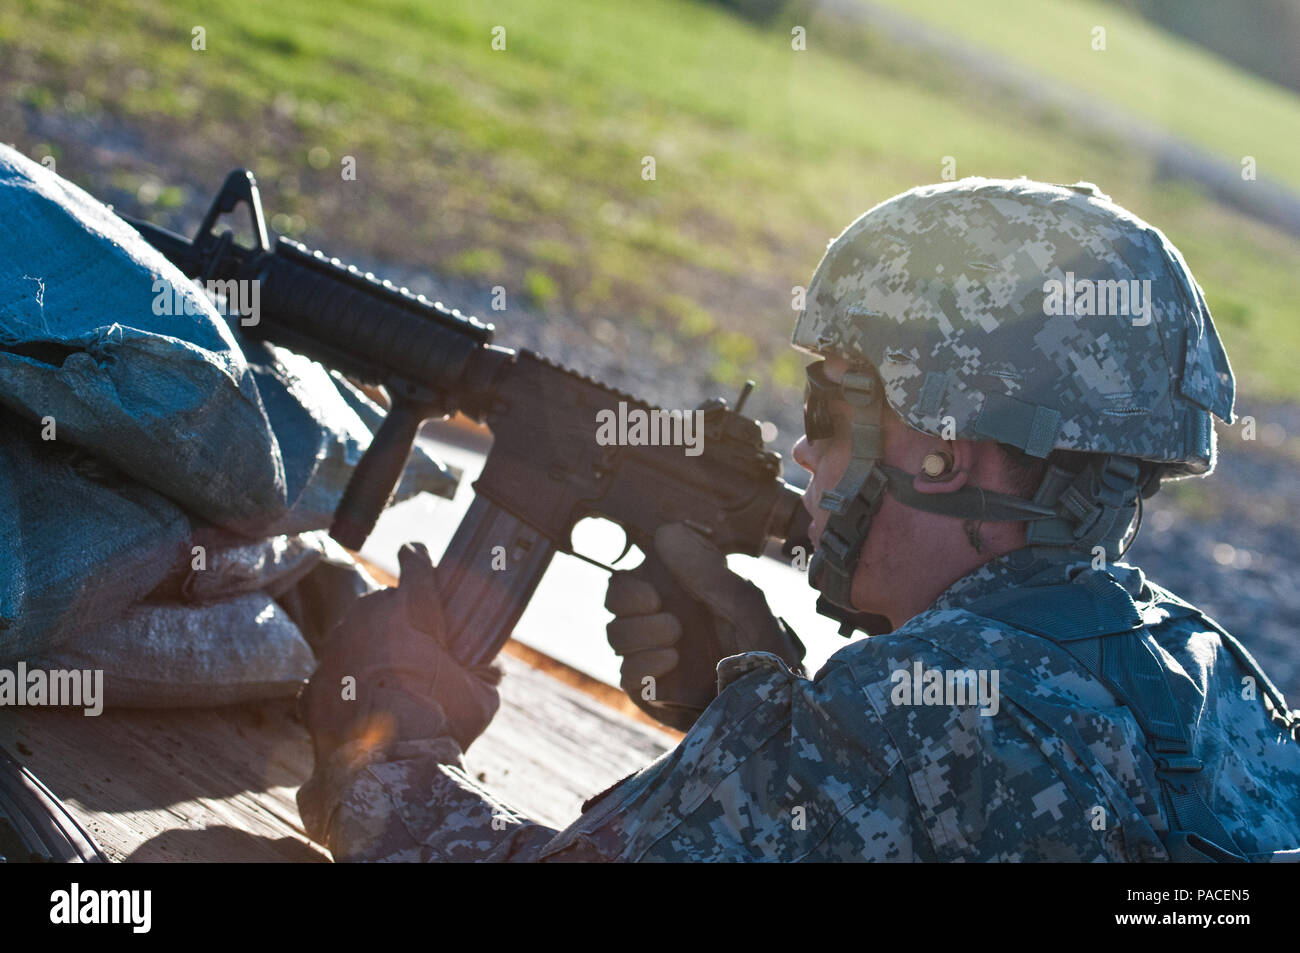 316th Sustainment Command Expeditionary High Resolution Stock Photography And Images Alamy